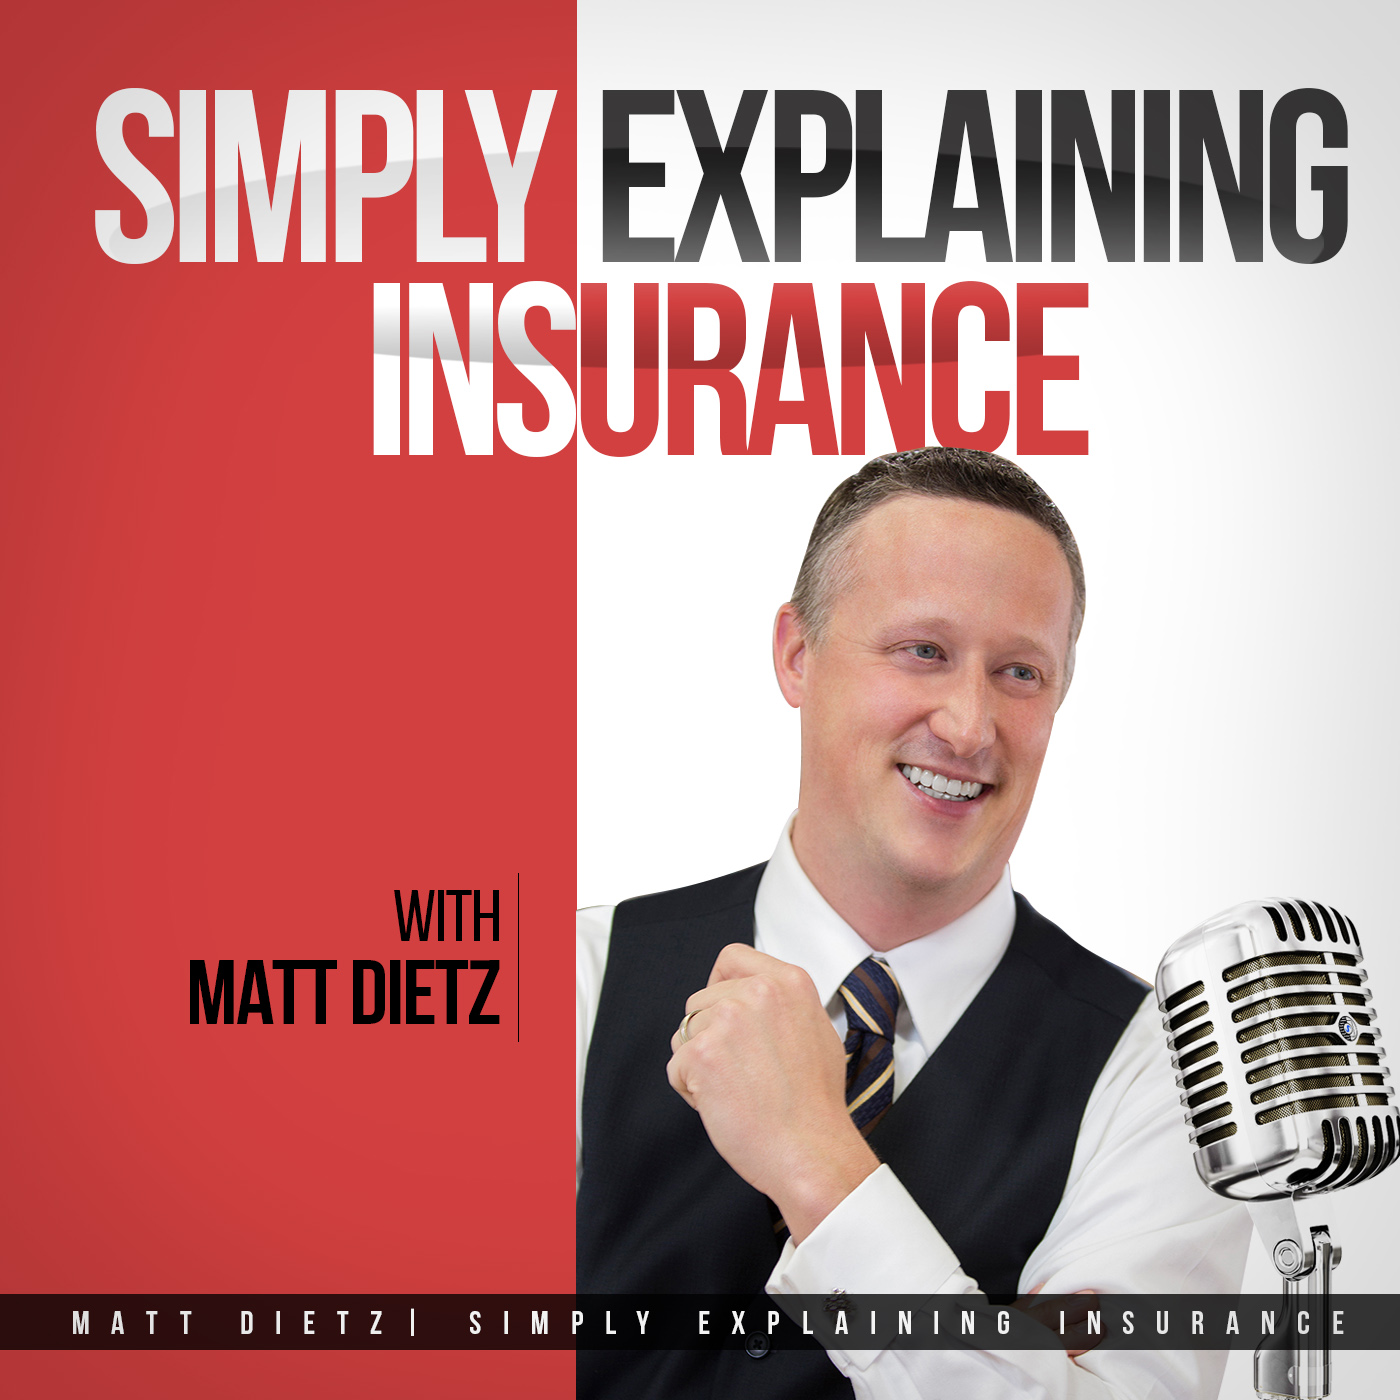 Simply Explaining Insurance